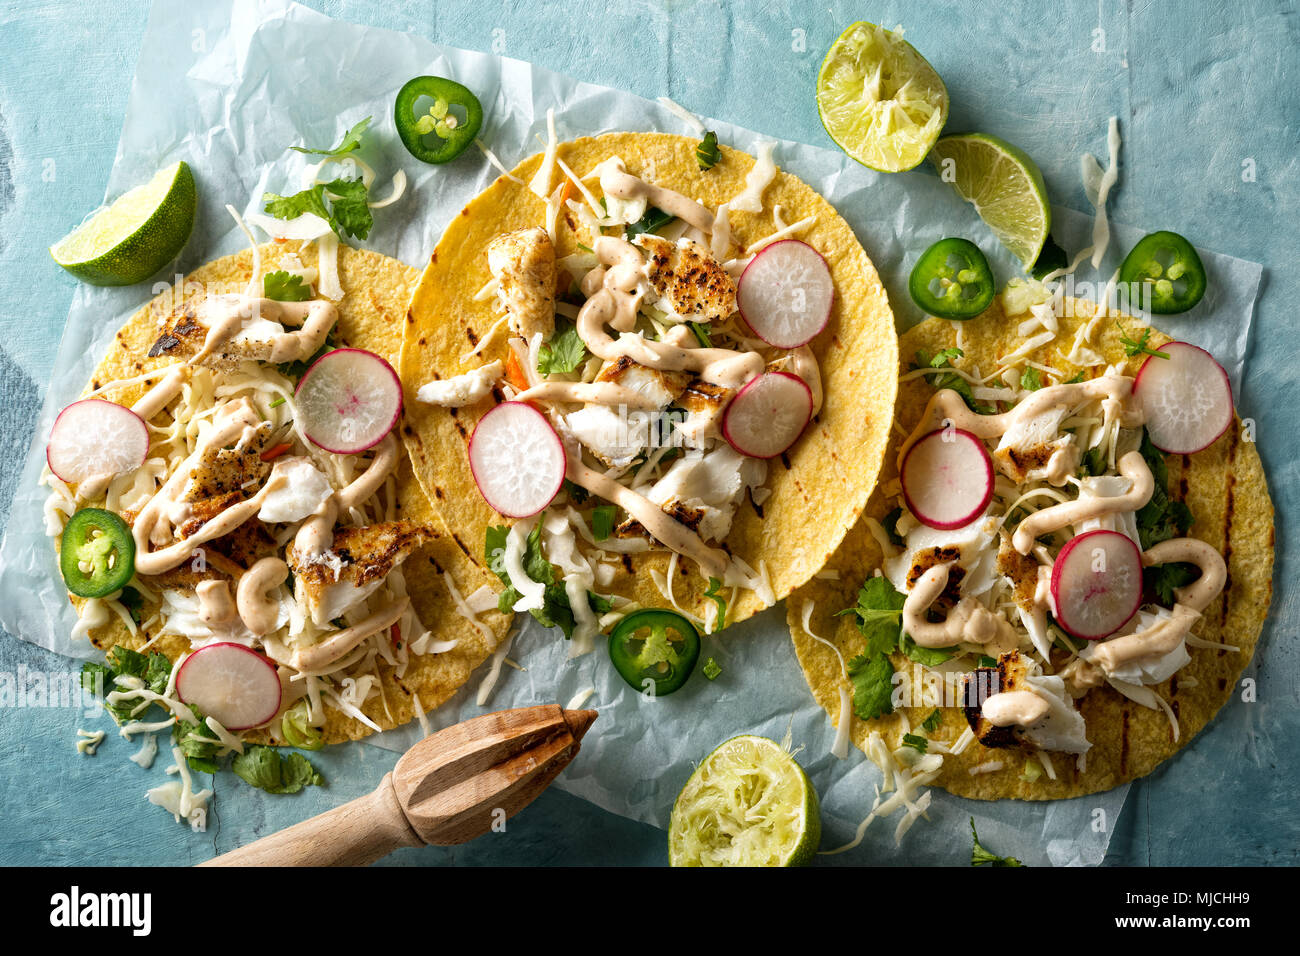 Delicious tacos with grilled fish, cilantro, lime, cabbage, carrot, jalapeno and radish with mexican chili crema sauce. - Stock Image